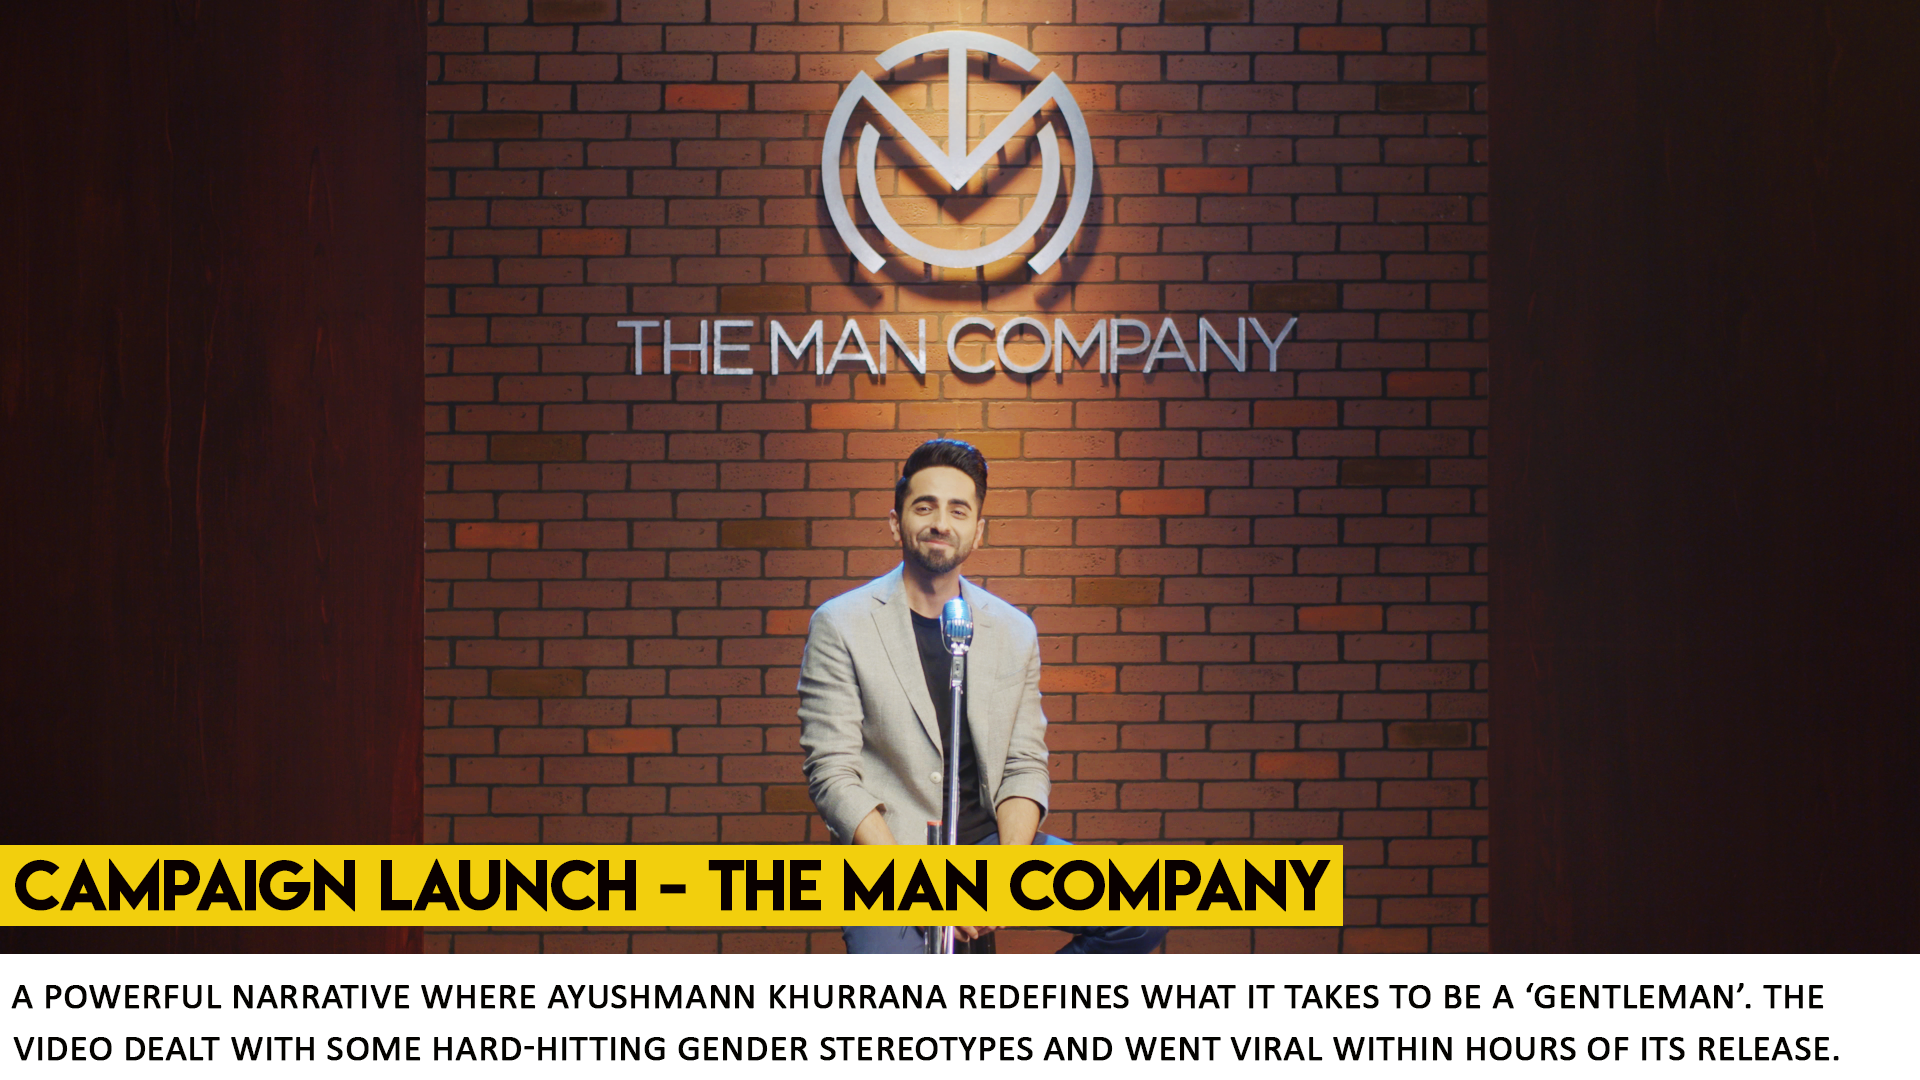 The Man Company Campaign